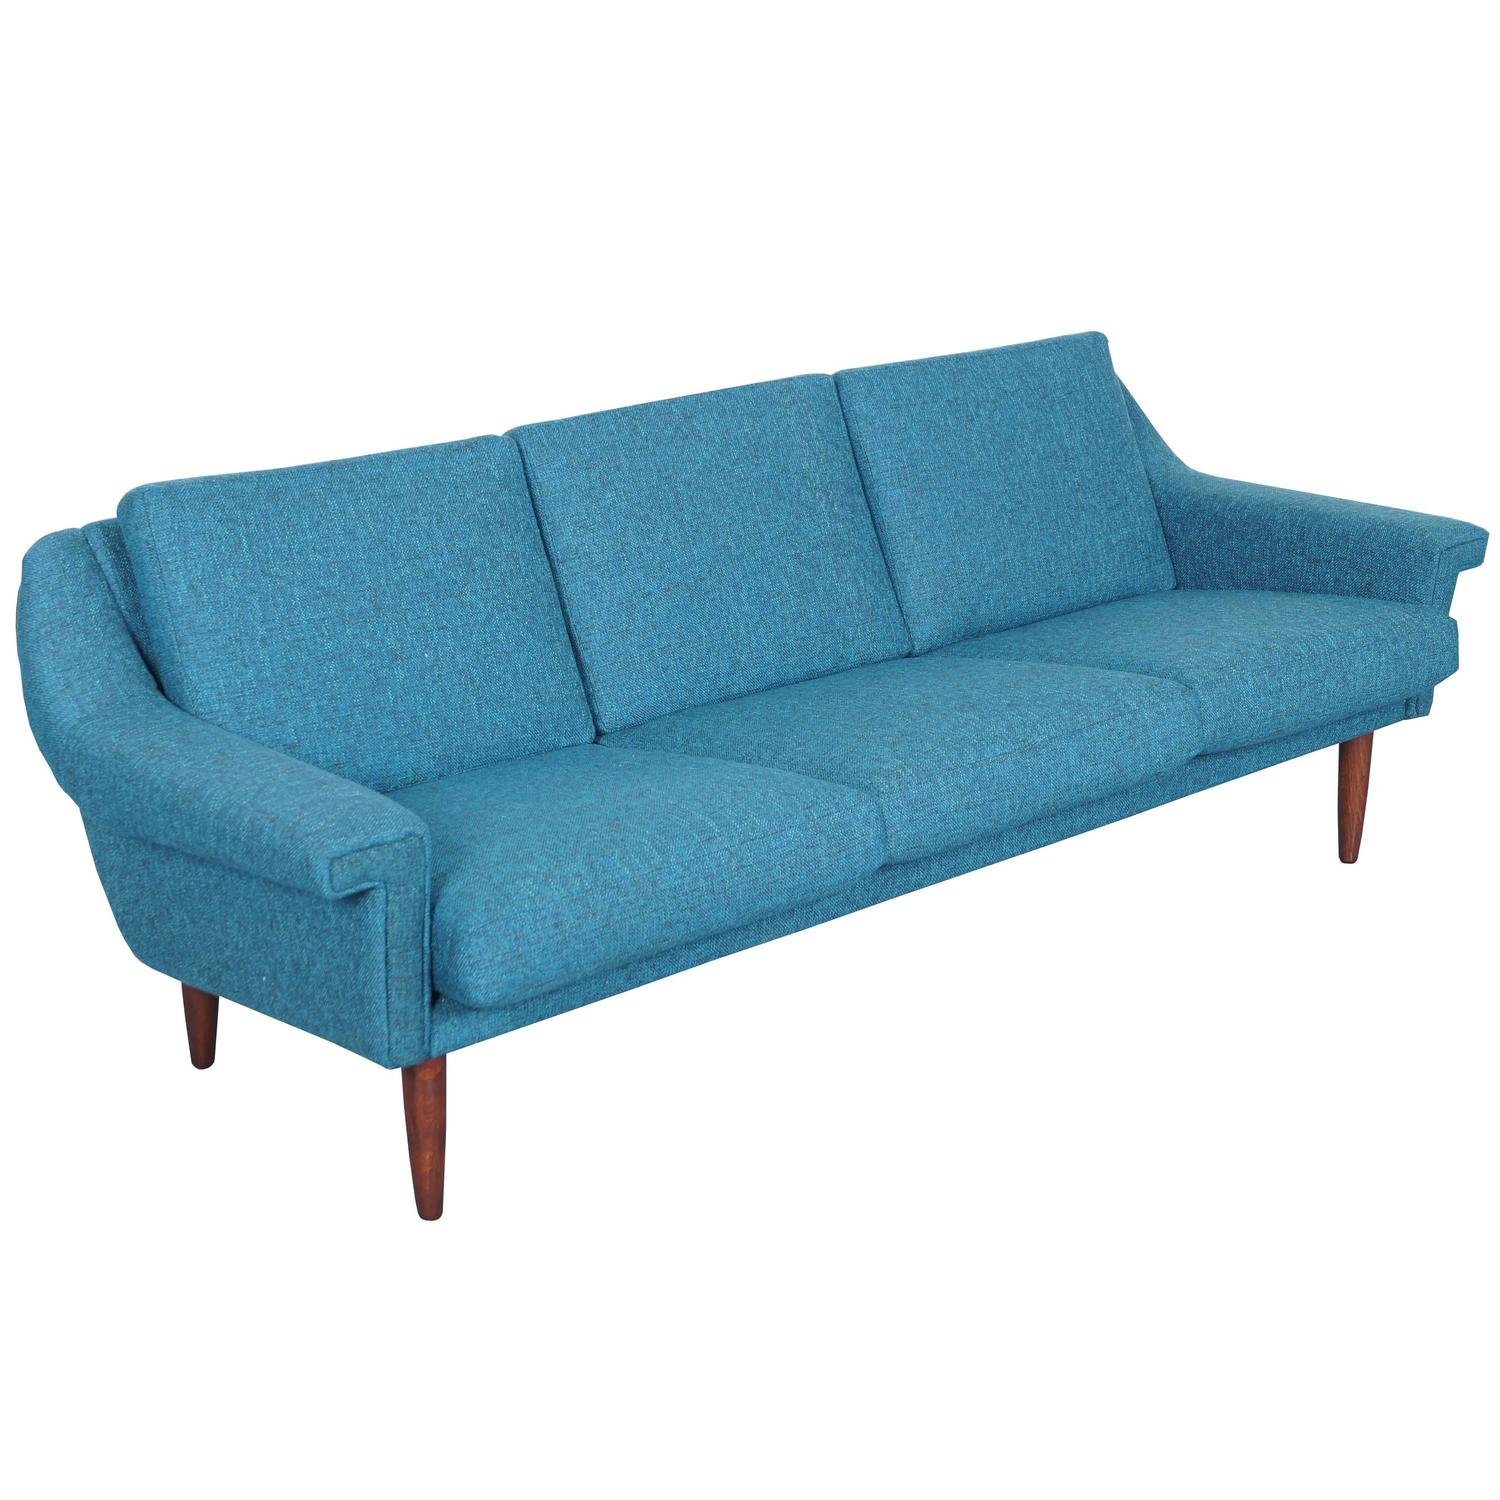 Danish Modern Sofa at 1stdibs